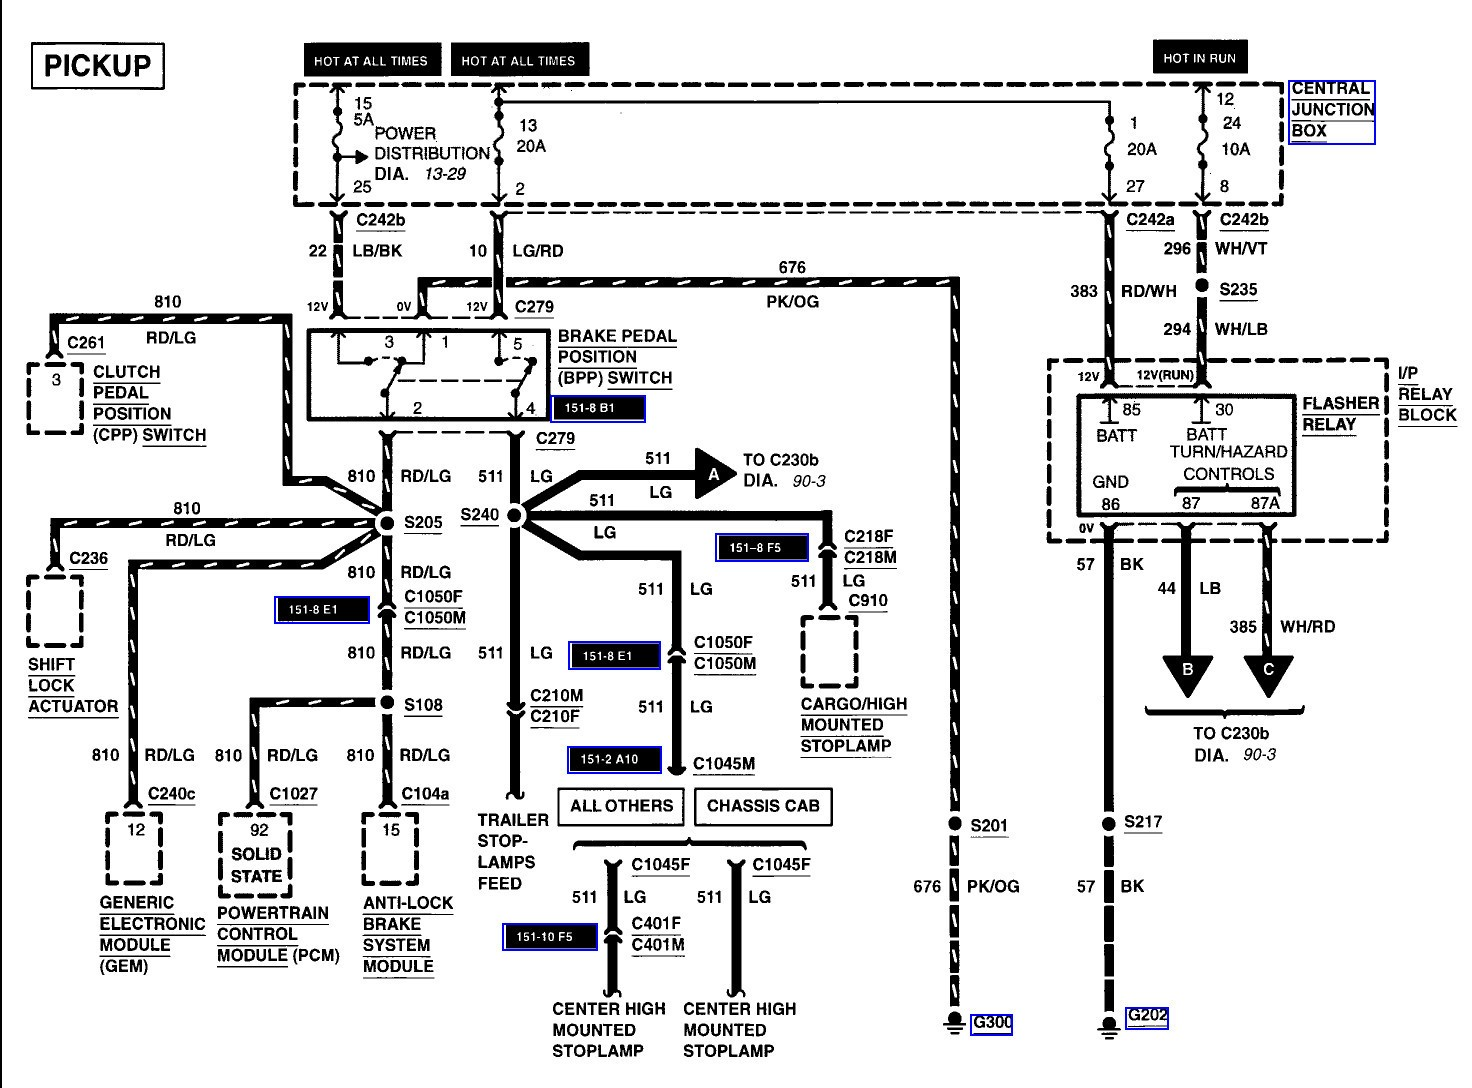 2002 ford f53 wiring diagram best wiring library 2013 Ford F53 Wiring-Diagram ford f53 ac wiring auto electrical wiring diagram ford 460 distributor diagram 2000 ford f53 wiring